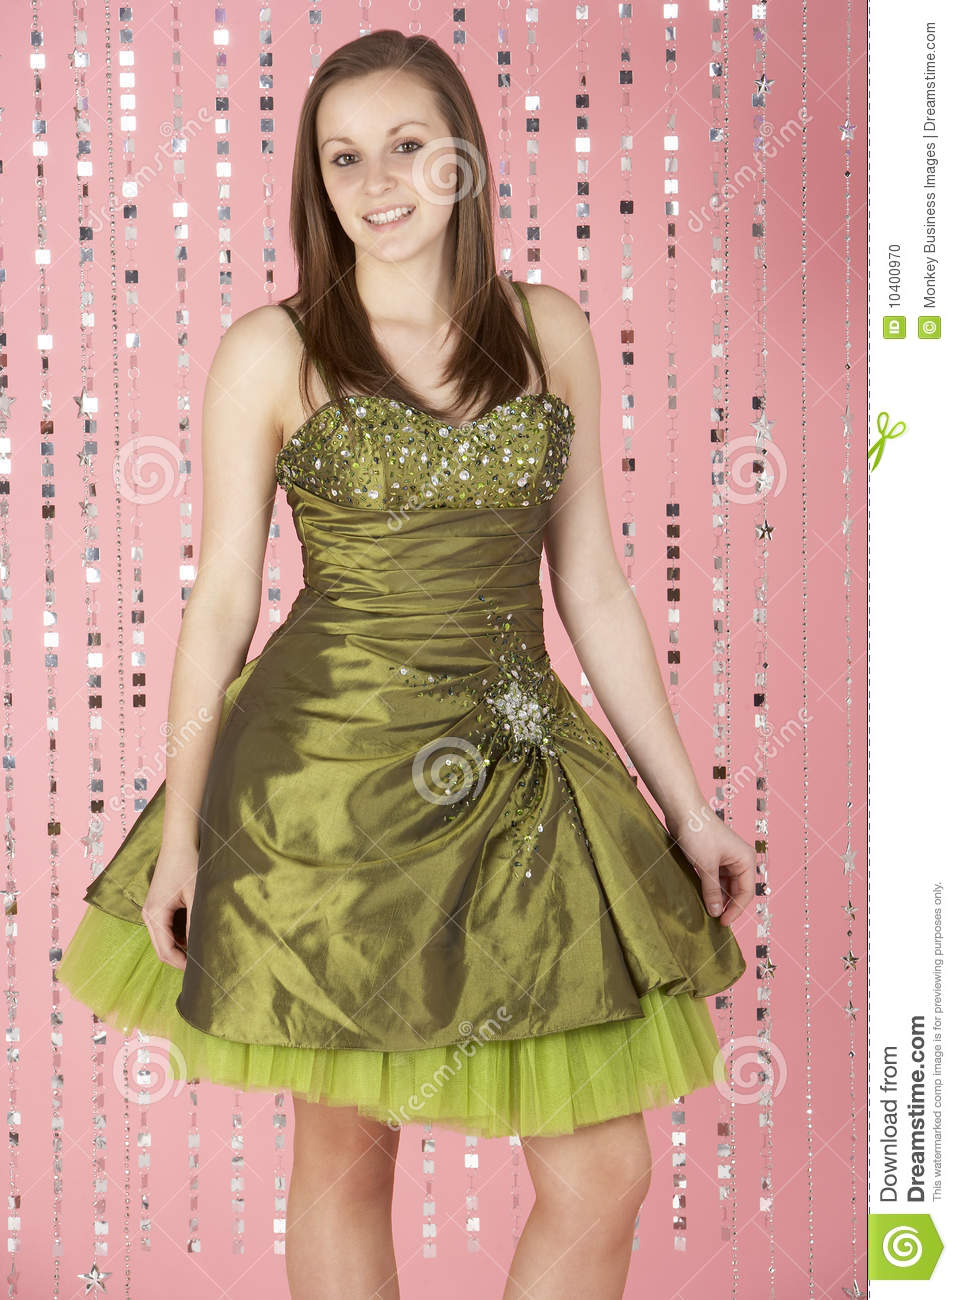 Young Girl Wearing Party Dress Stock Photo - Image of full, color ...